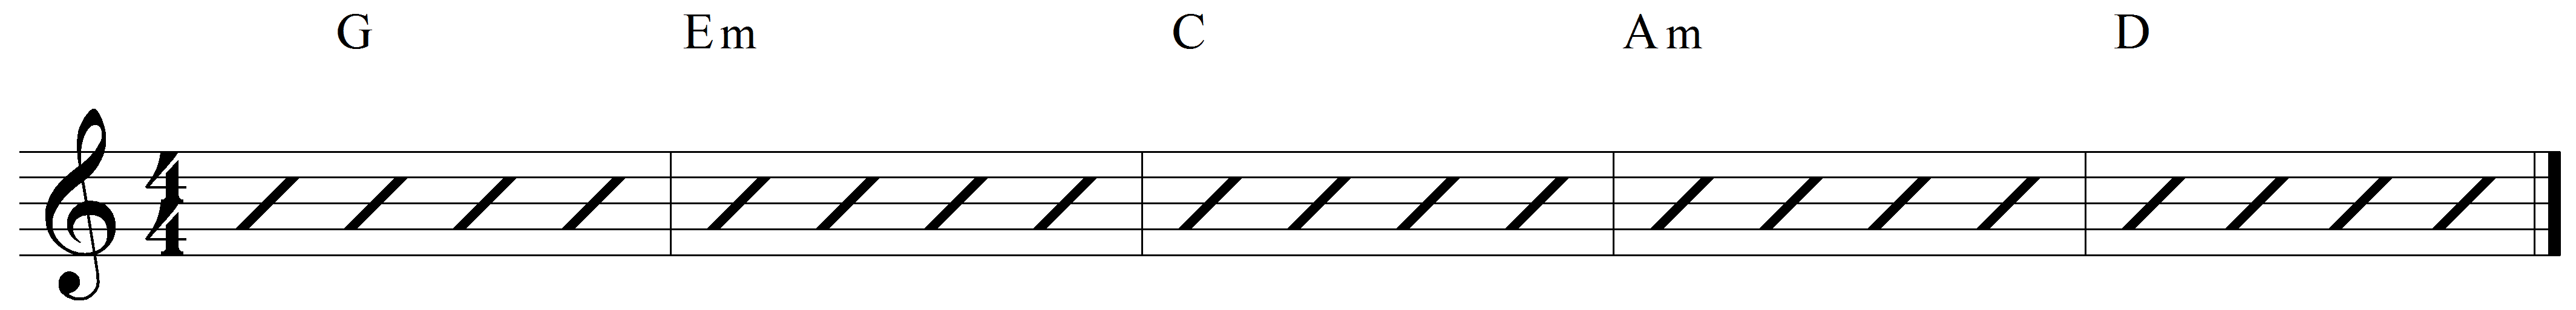 Key of G chord pattern example